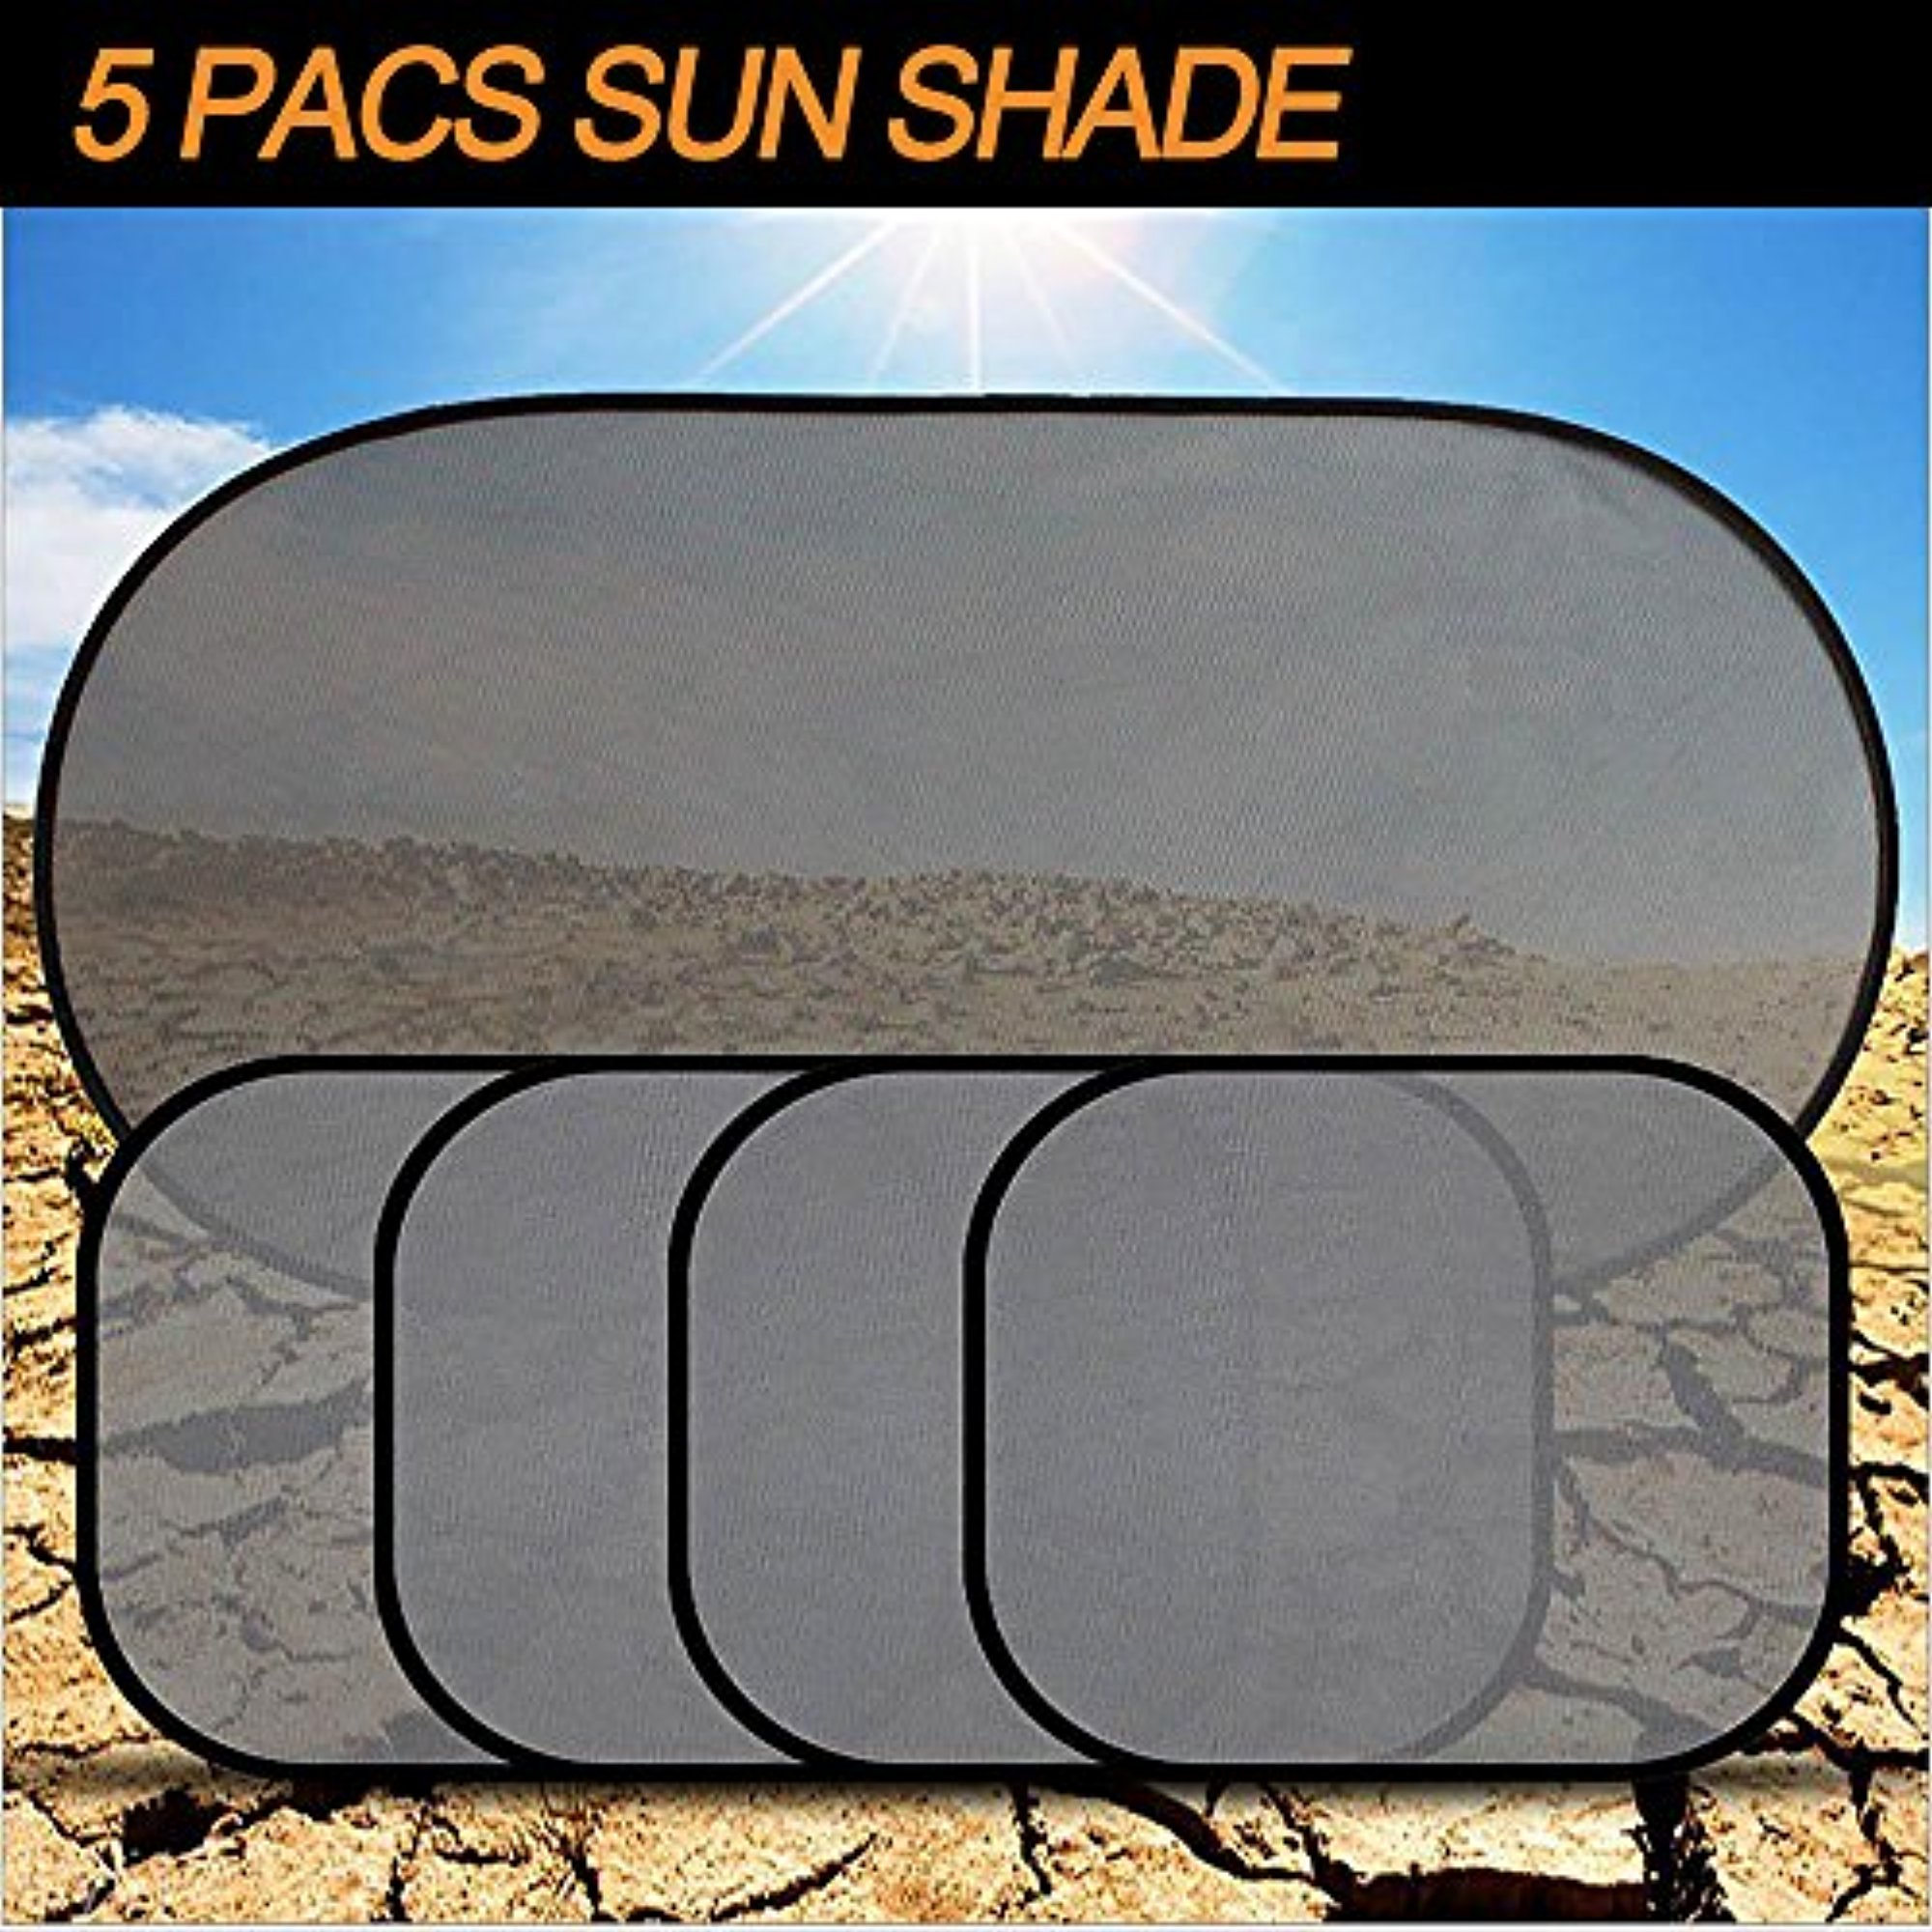 Car Sun Shade [SET of 5] for Windows Car Visor Protect Your Kids and Pets from Sun Glare and Heat Fit Most of Vehicle IClover